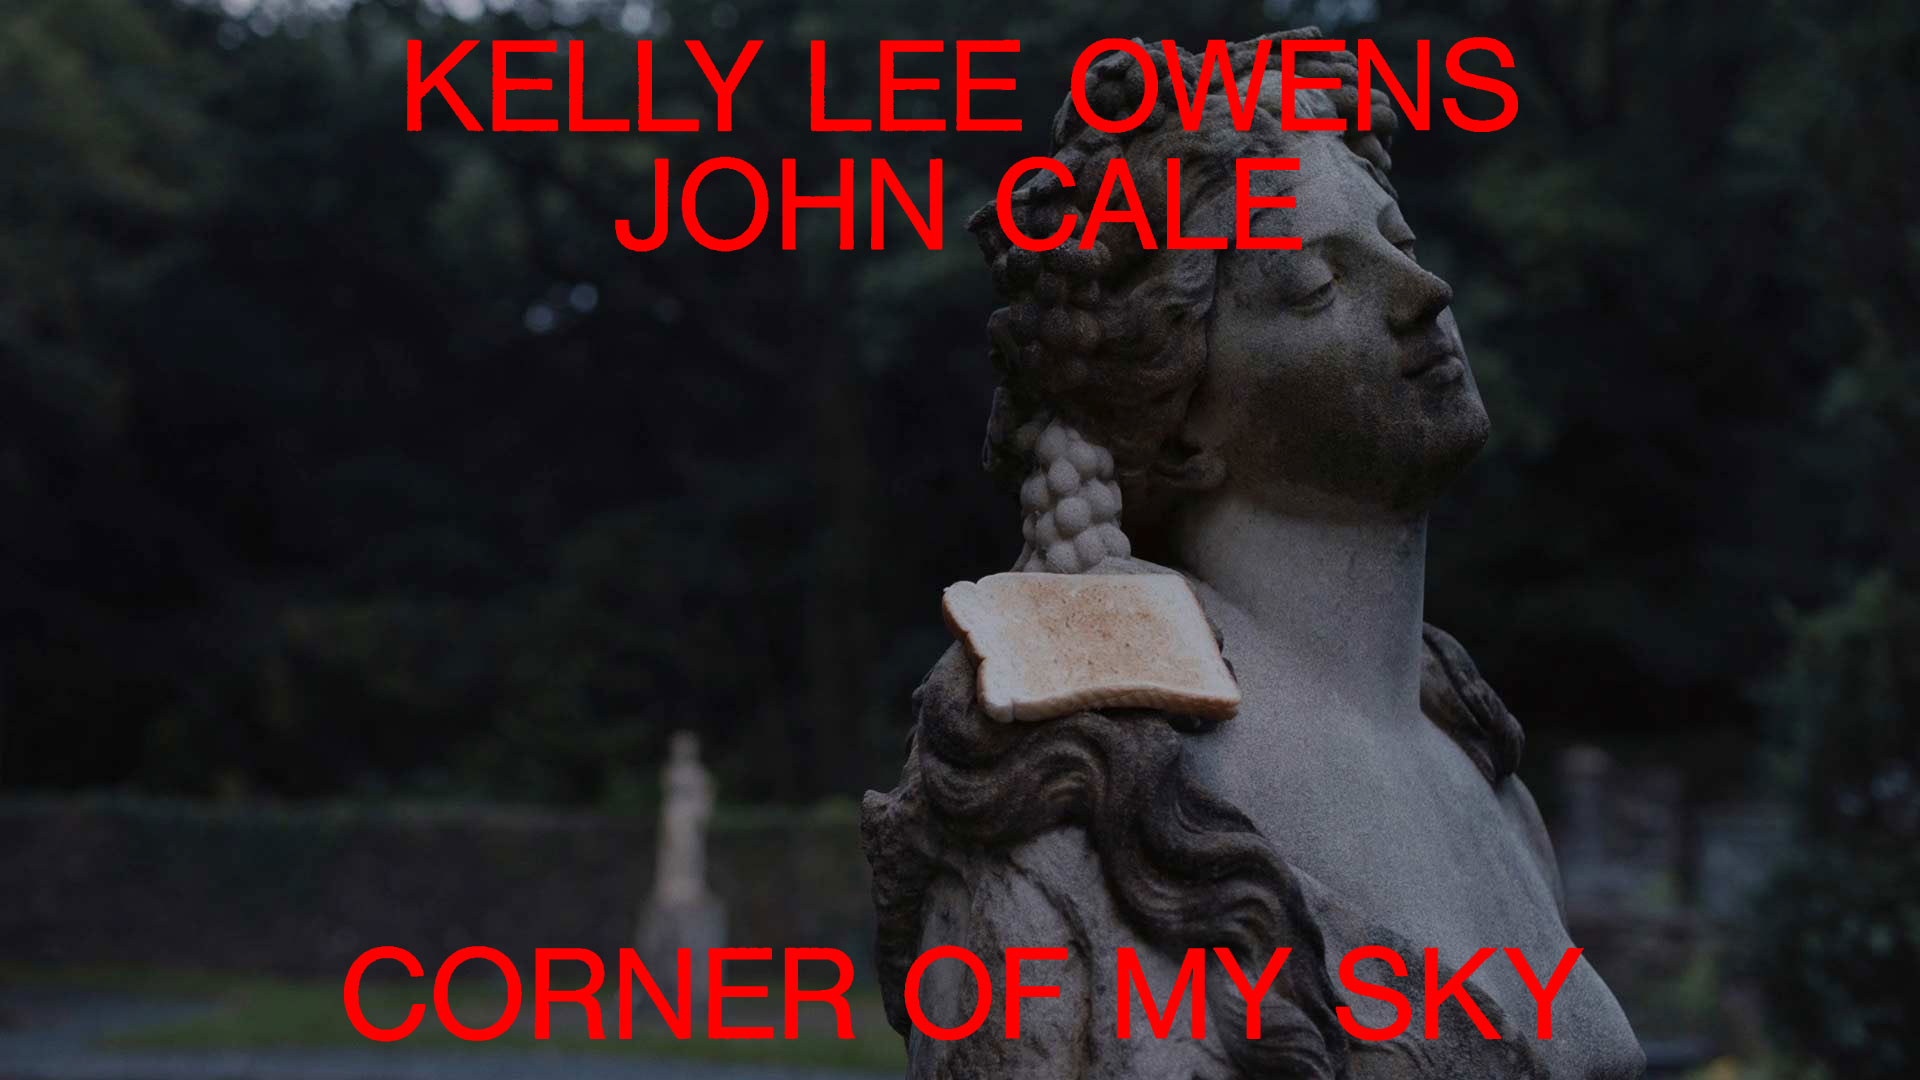 """Corner Of My Sky"" by Kelly Lee Owens featuring John Cale and Michael Sheen"